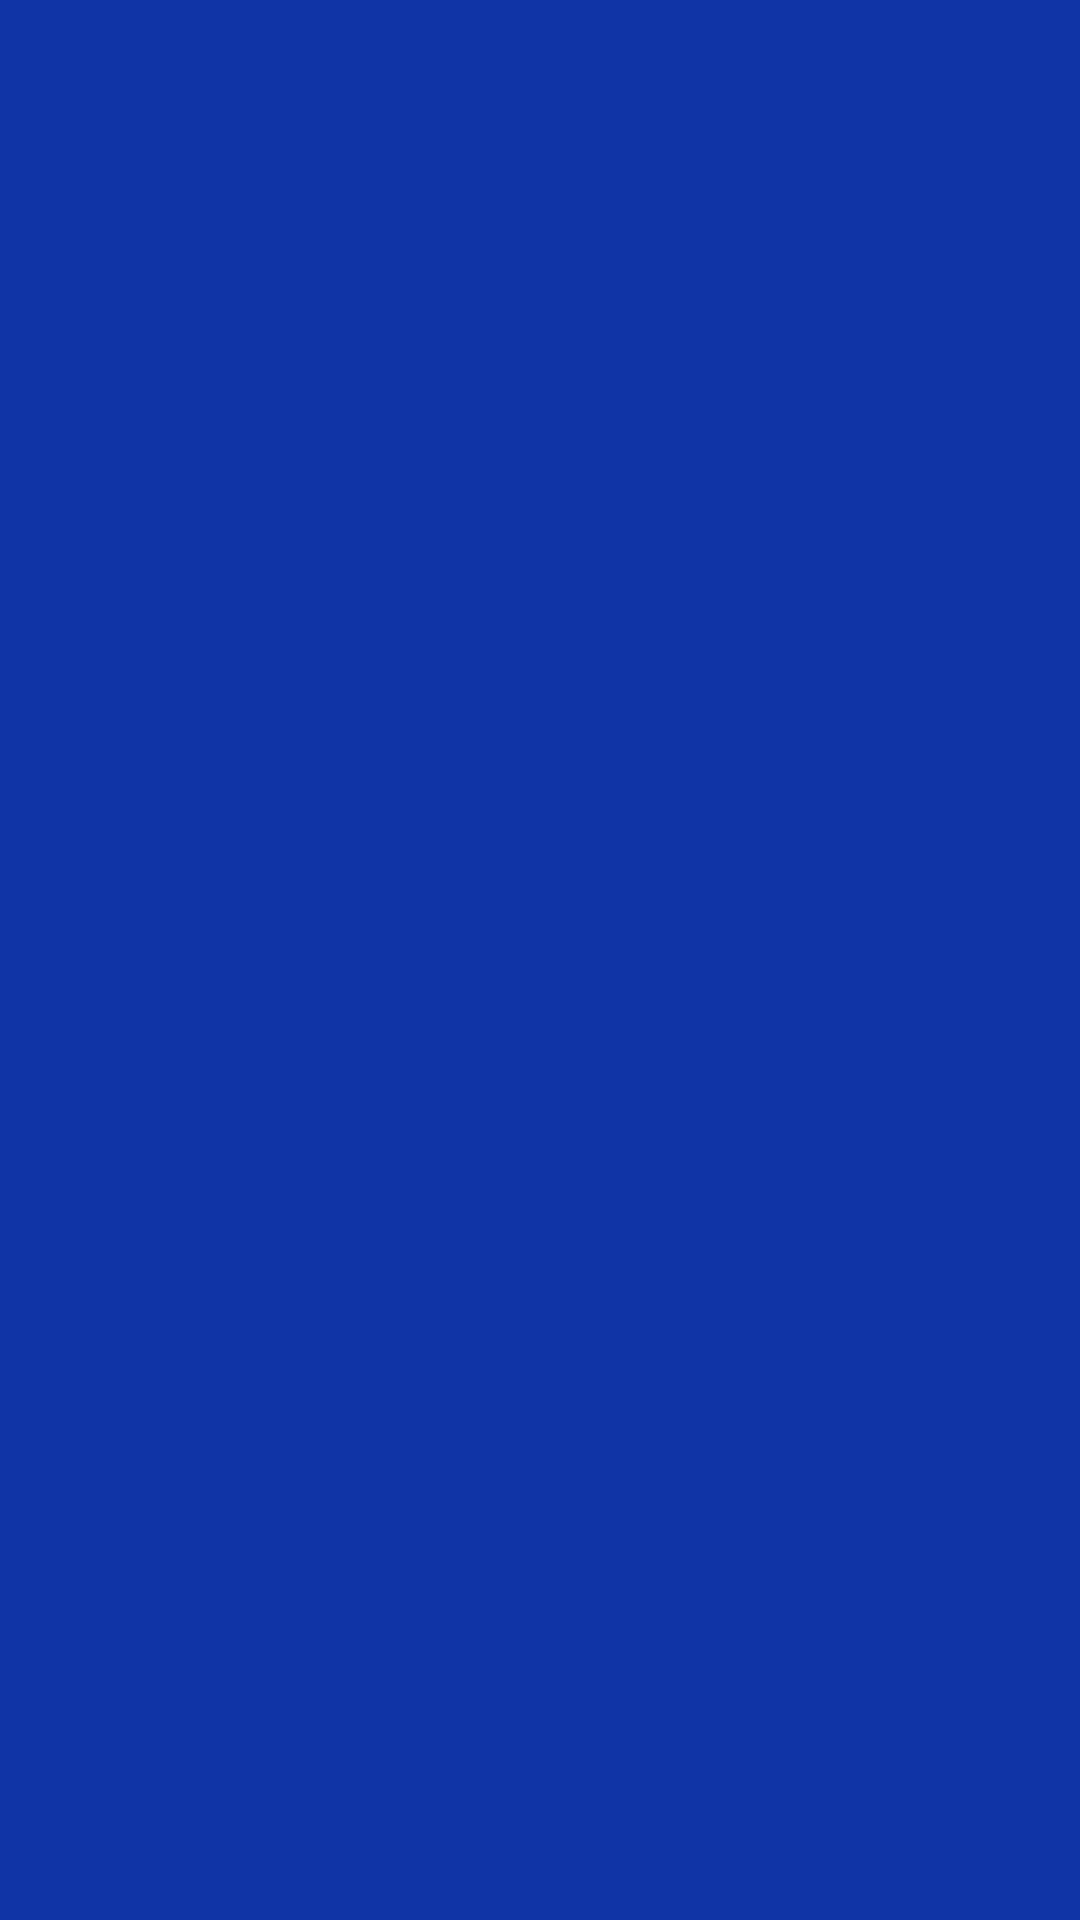 1080x1920 Egyptian Blue Solid Color Background